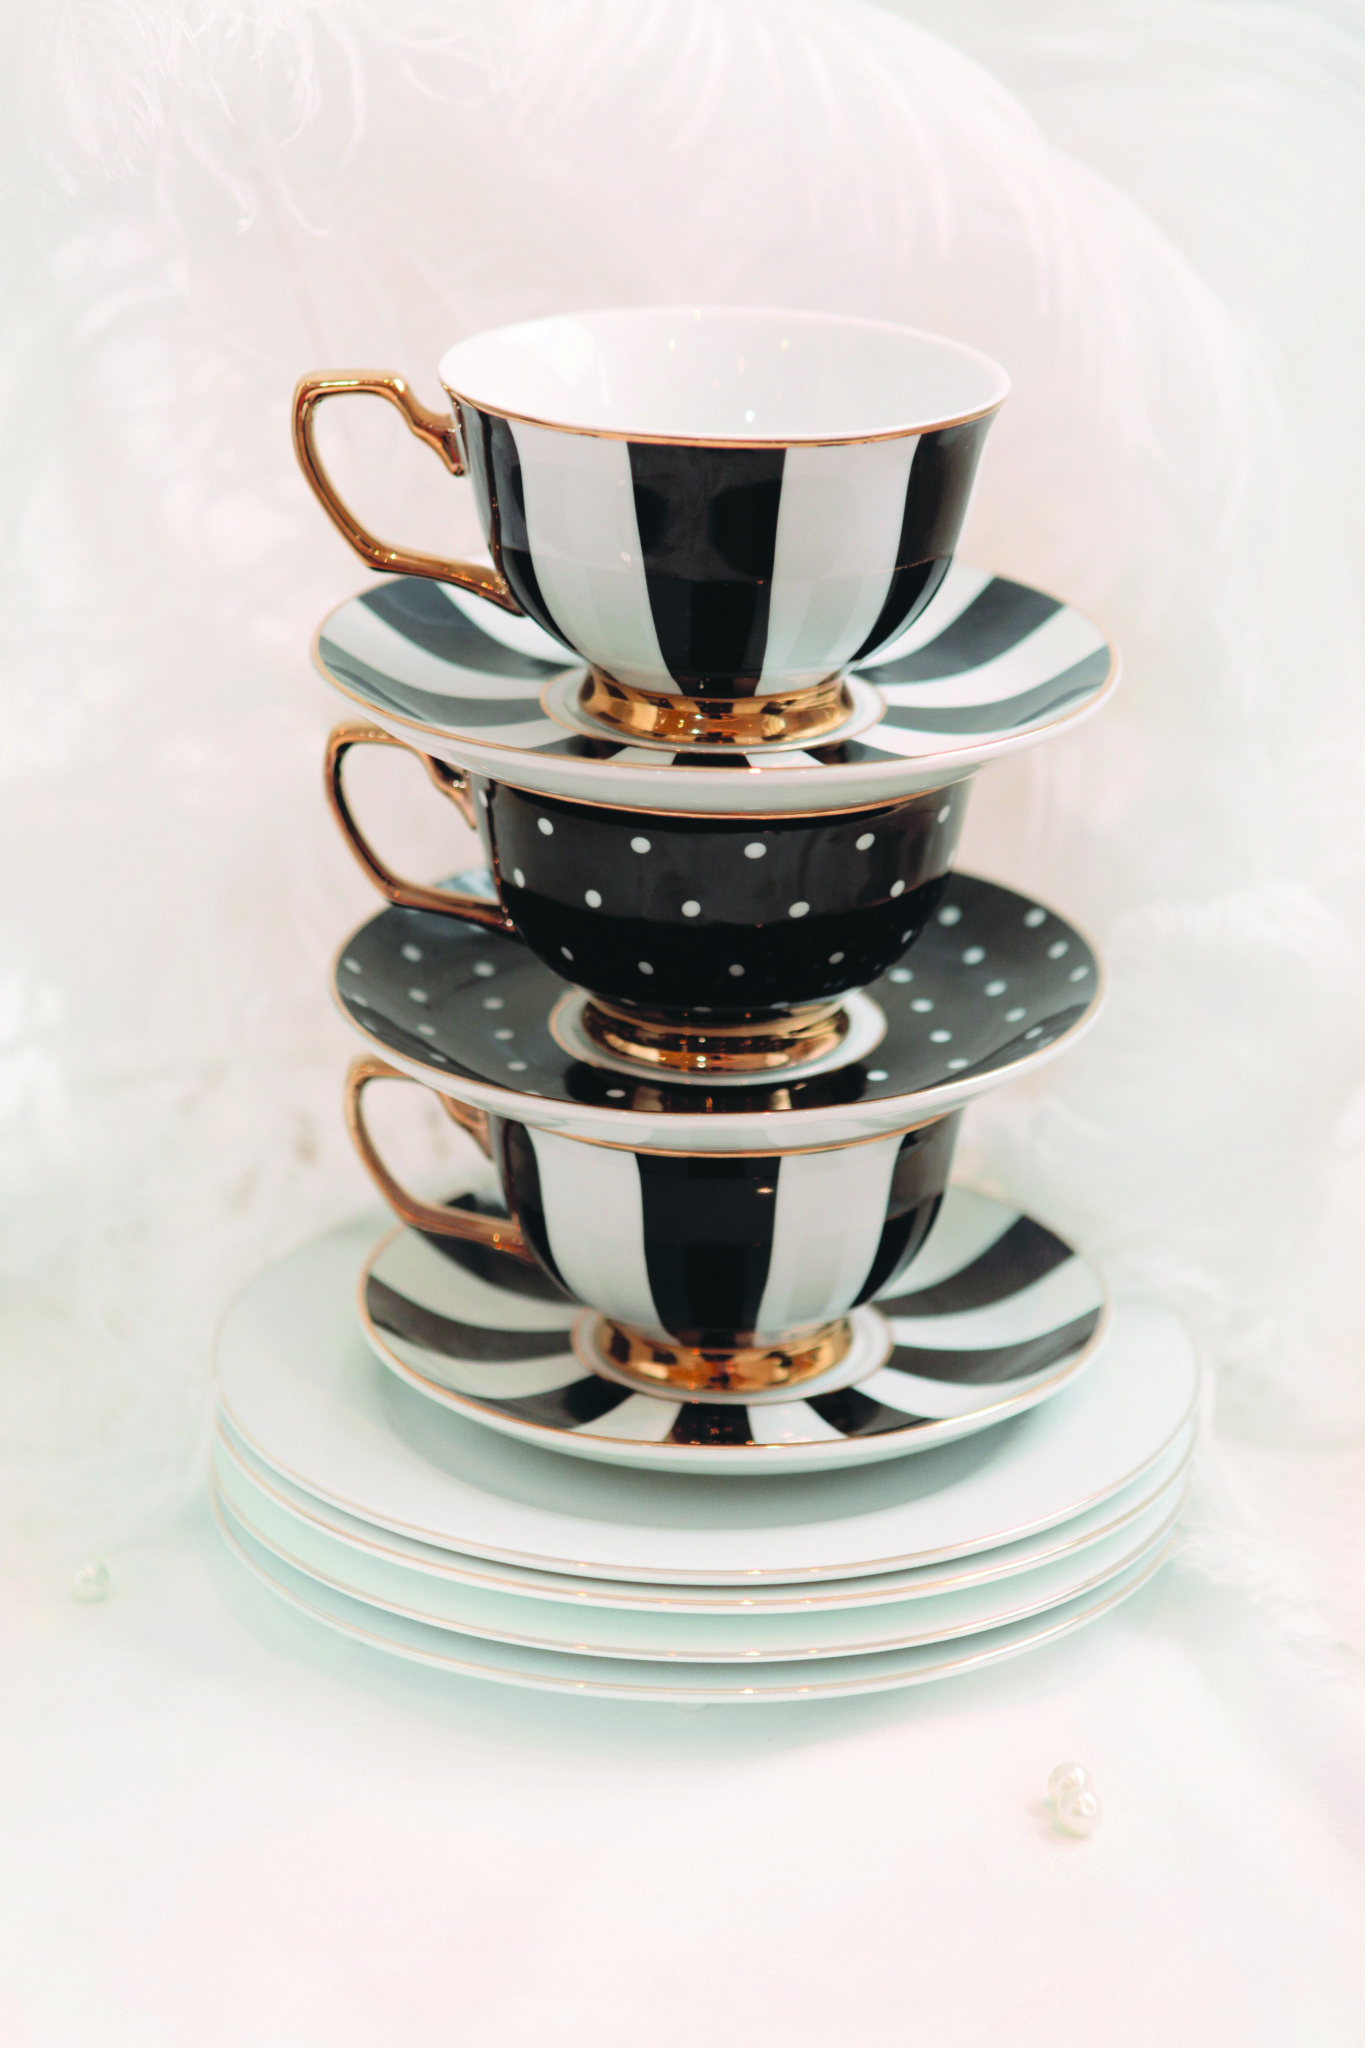 New Cristina Re Teacups Are A Little Bit Alice In